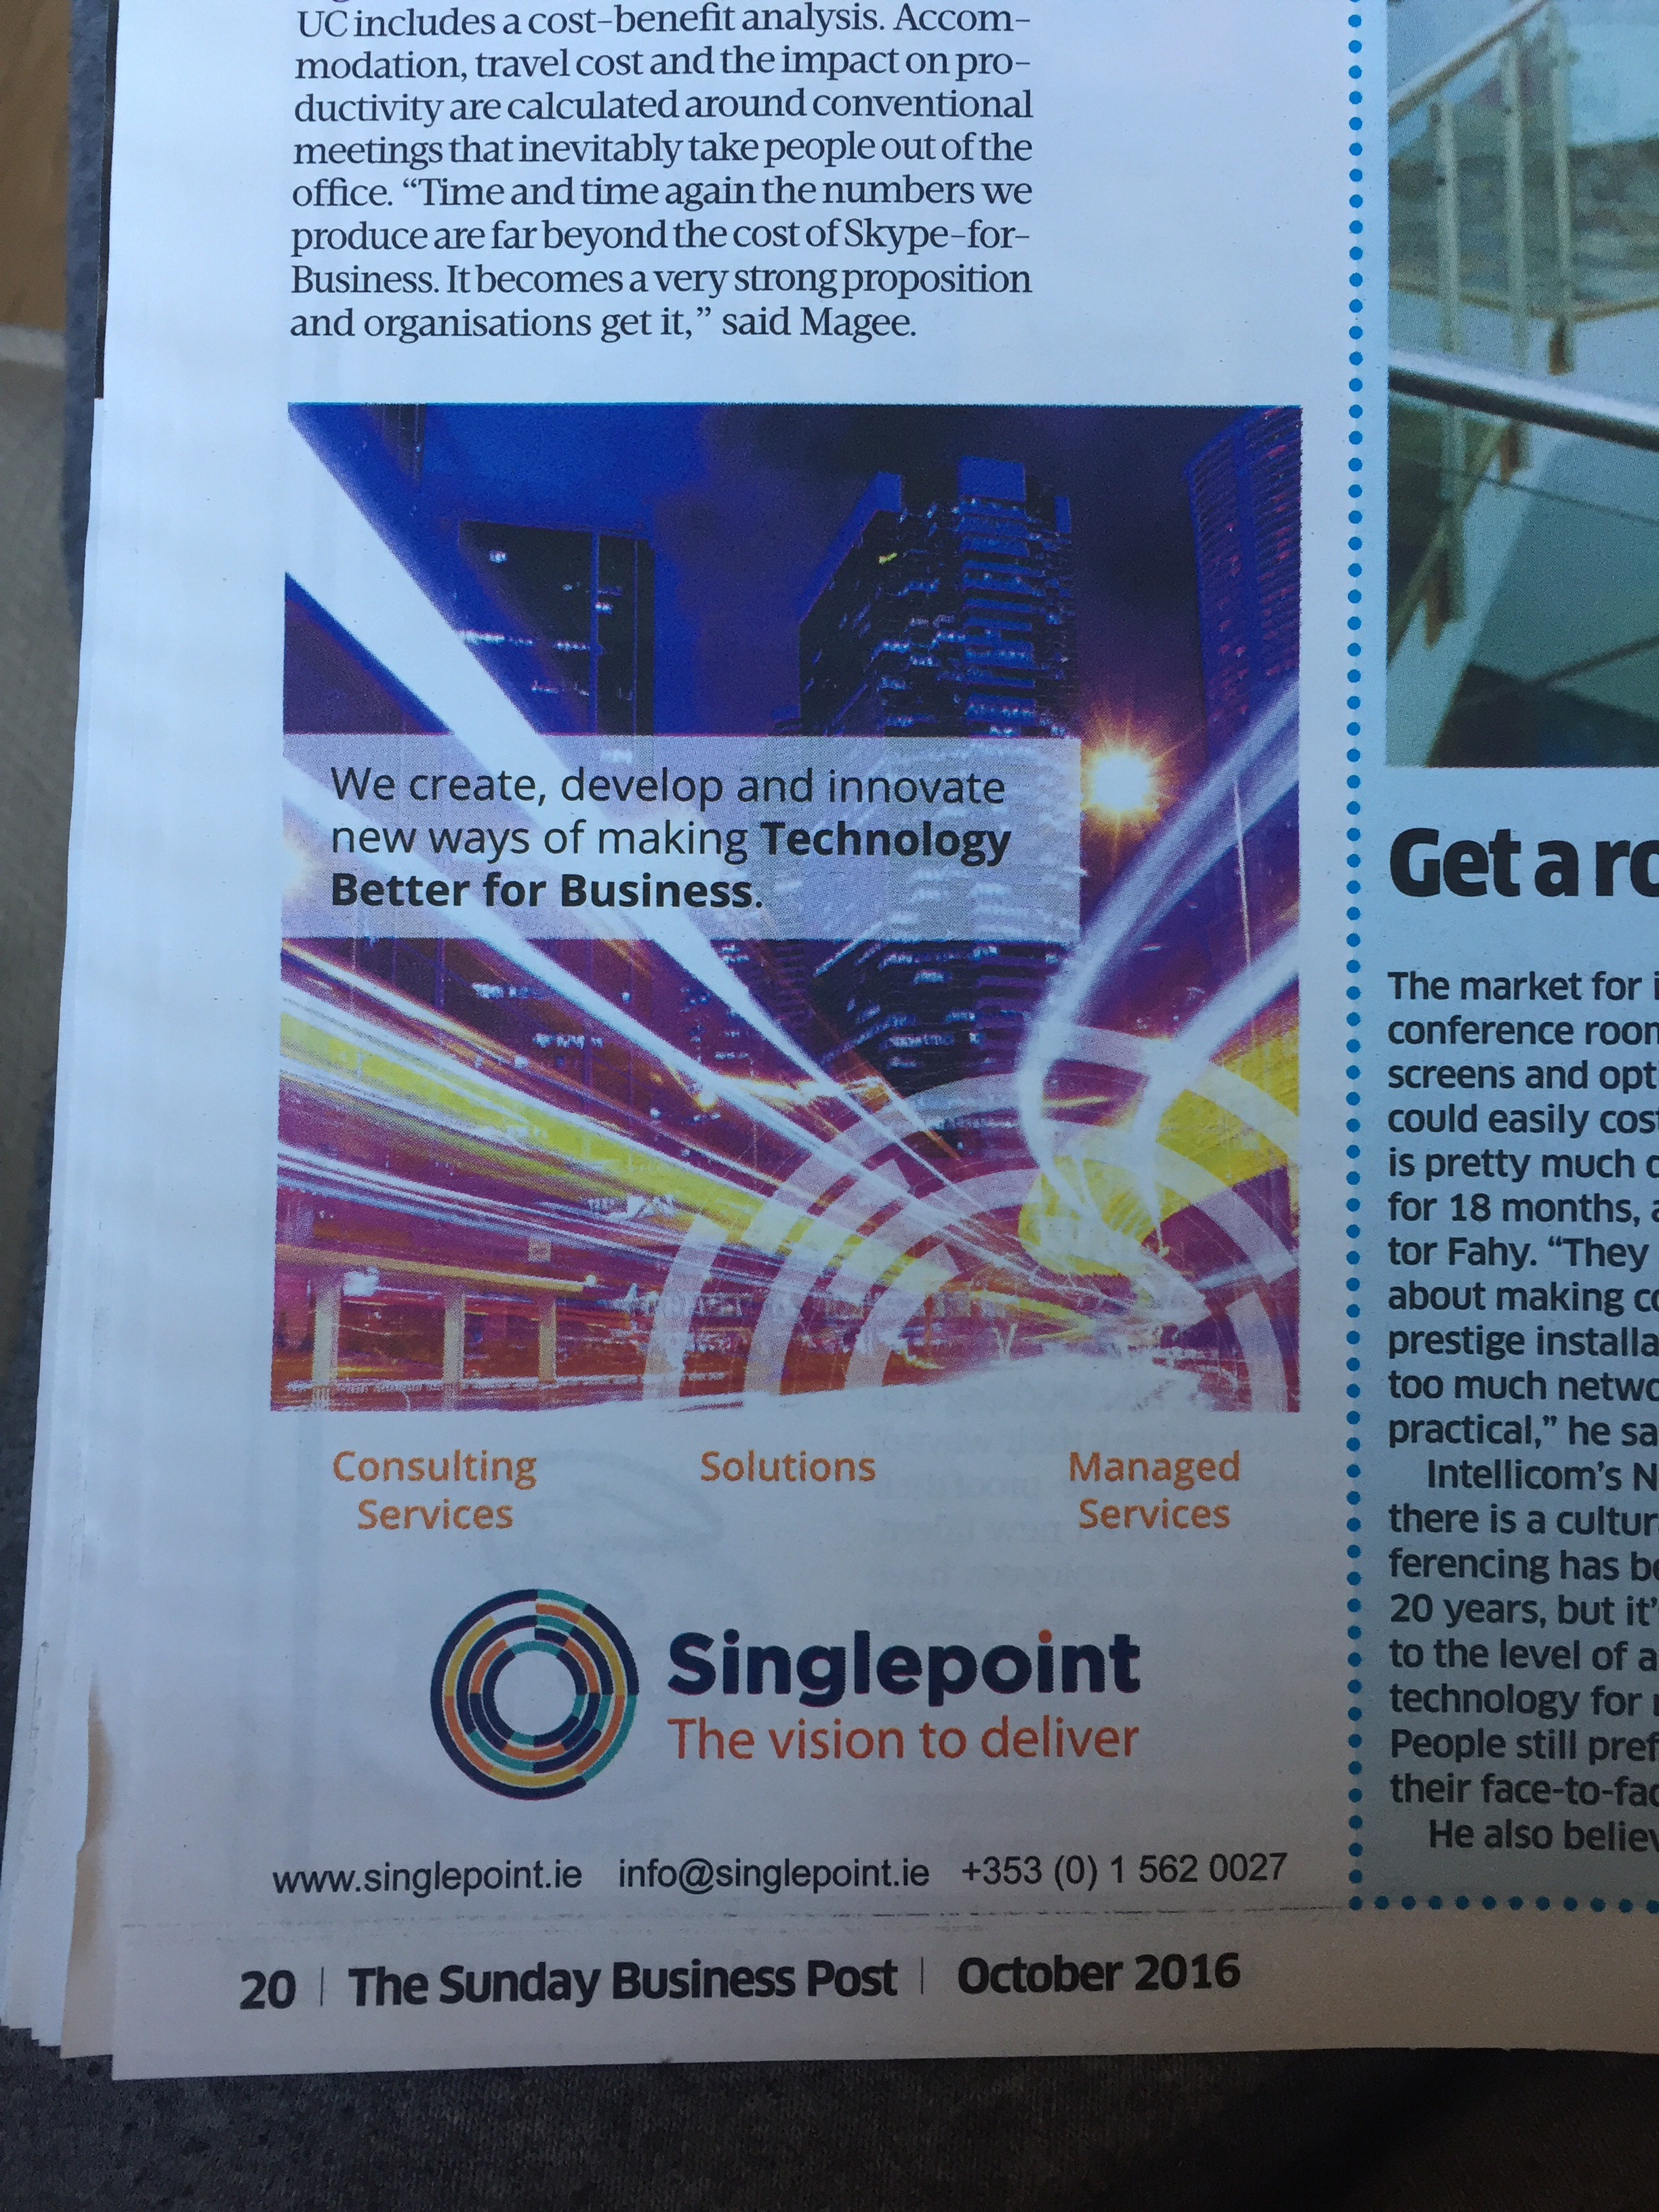 Singlepoint – we create develop and innovate new ways of making technology better for business